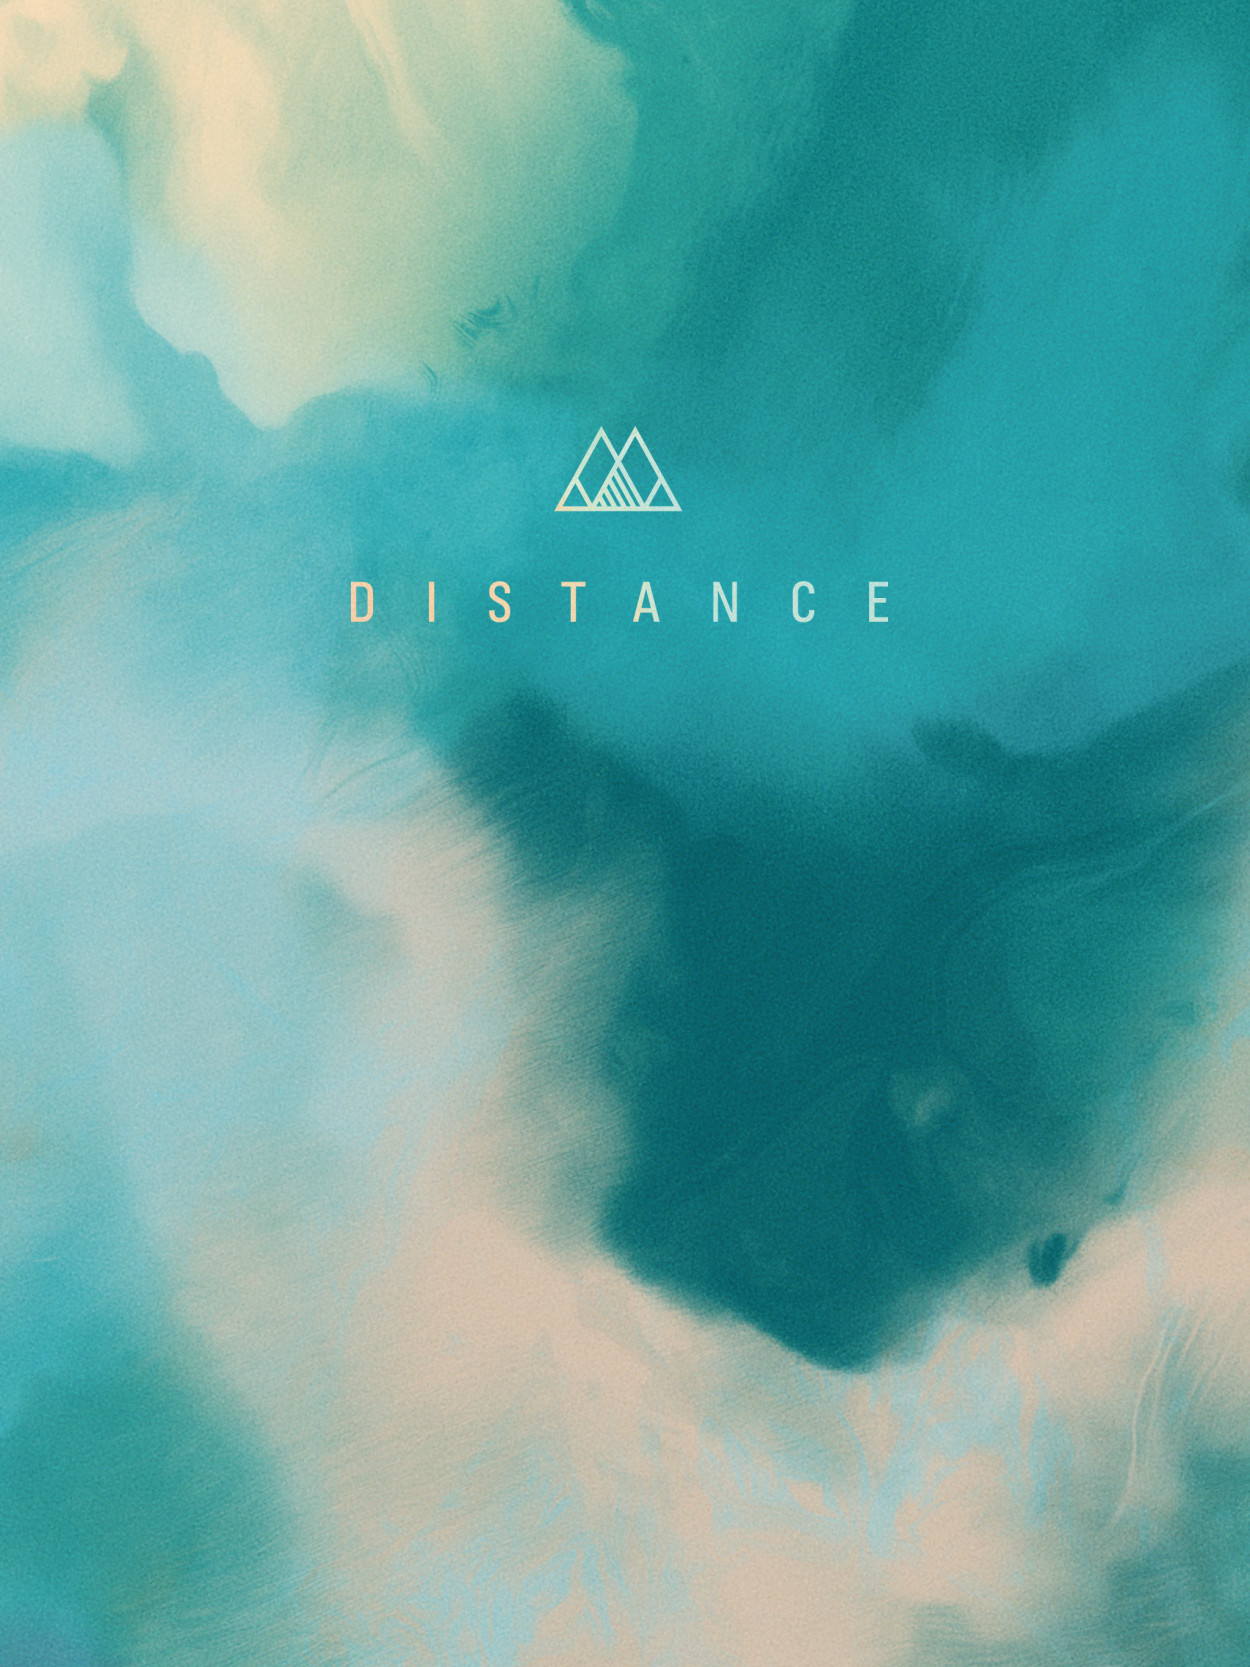 DISTANCE-WALLPAPER-001-IPAD.jpg